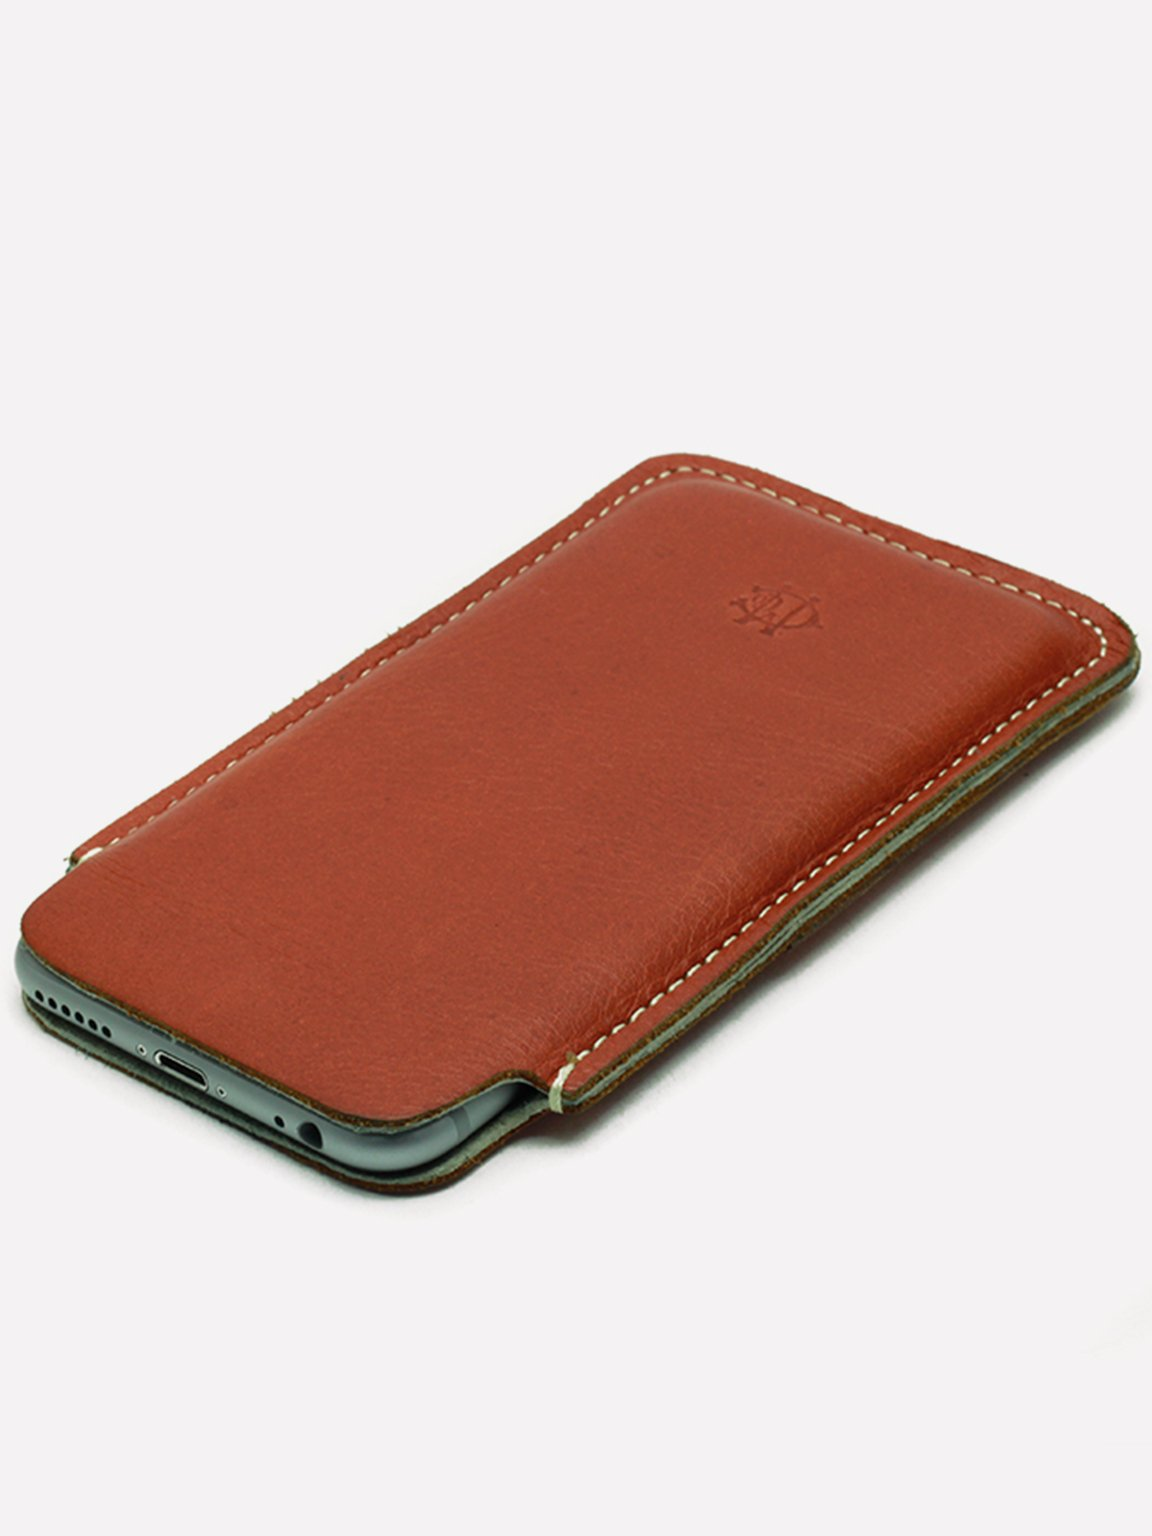 Foto do iPhone 6/6S/7 Case Cutterman - Whisky